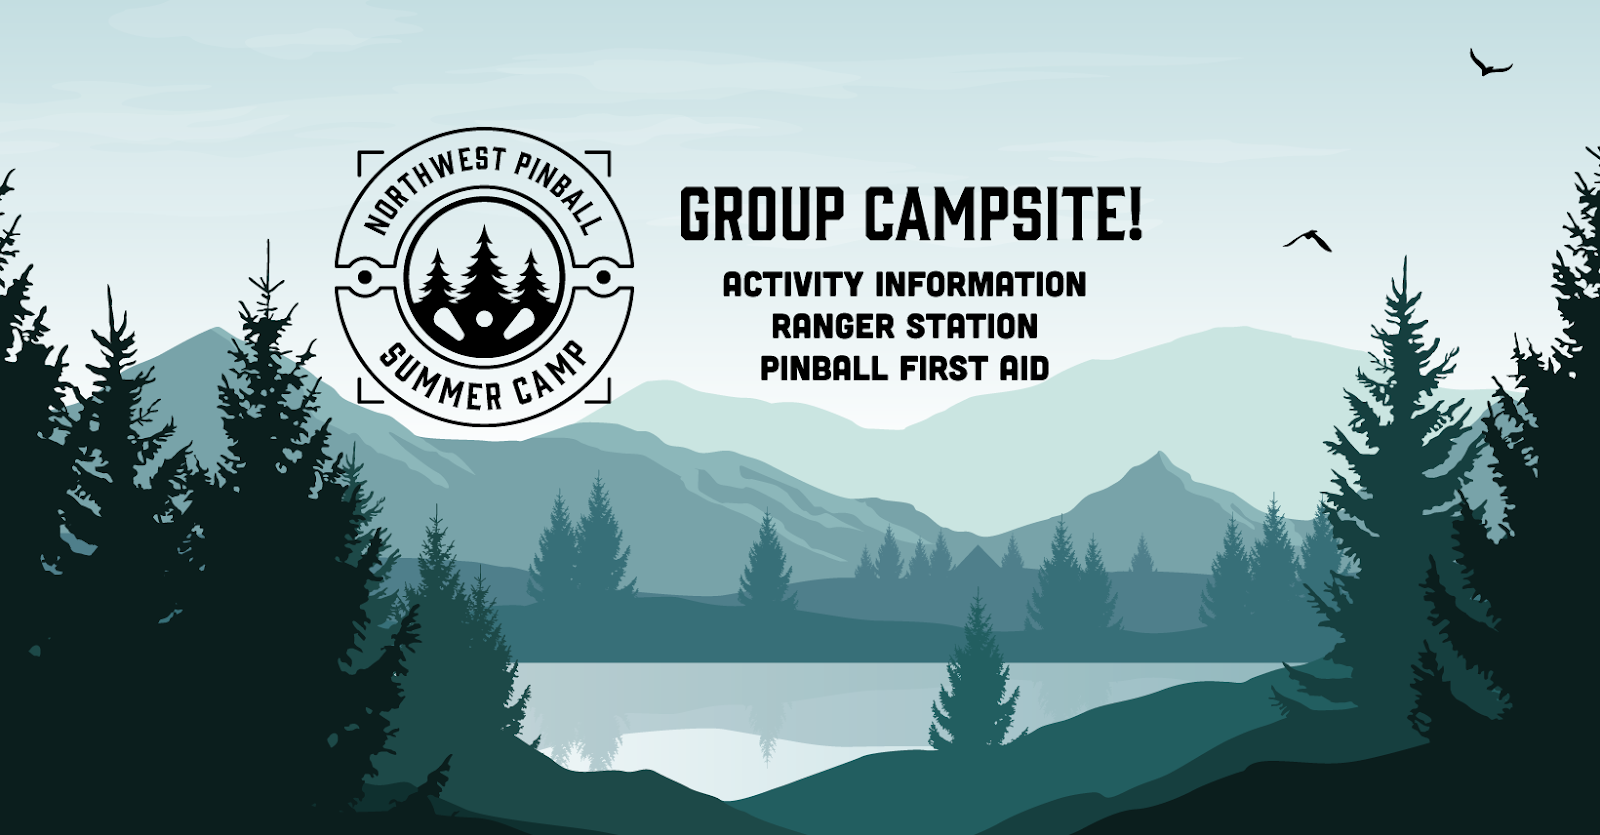 NW Pinball Summer Camp